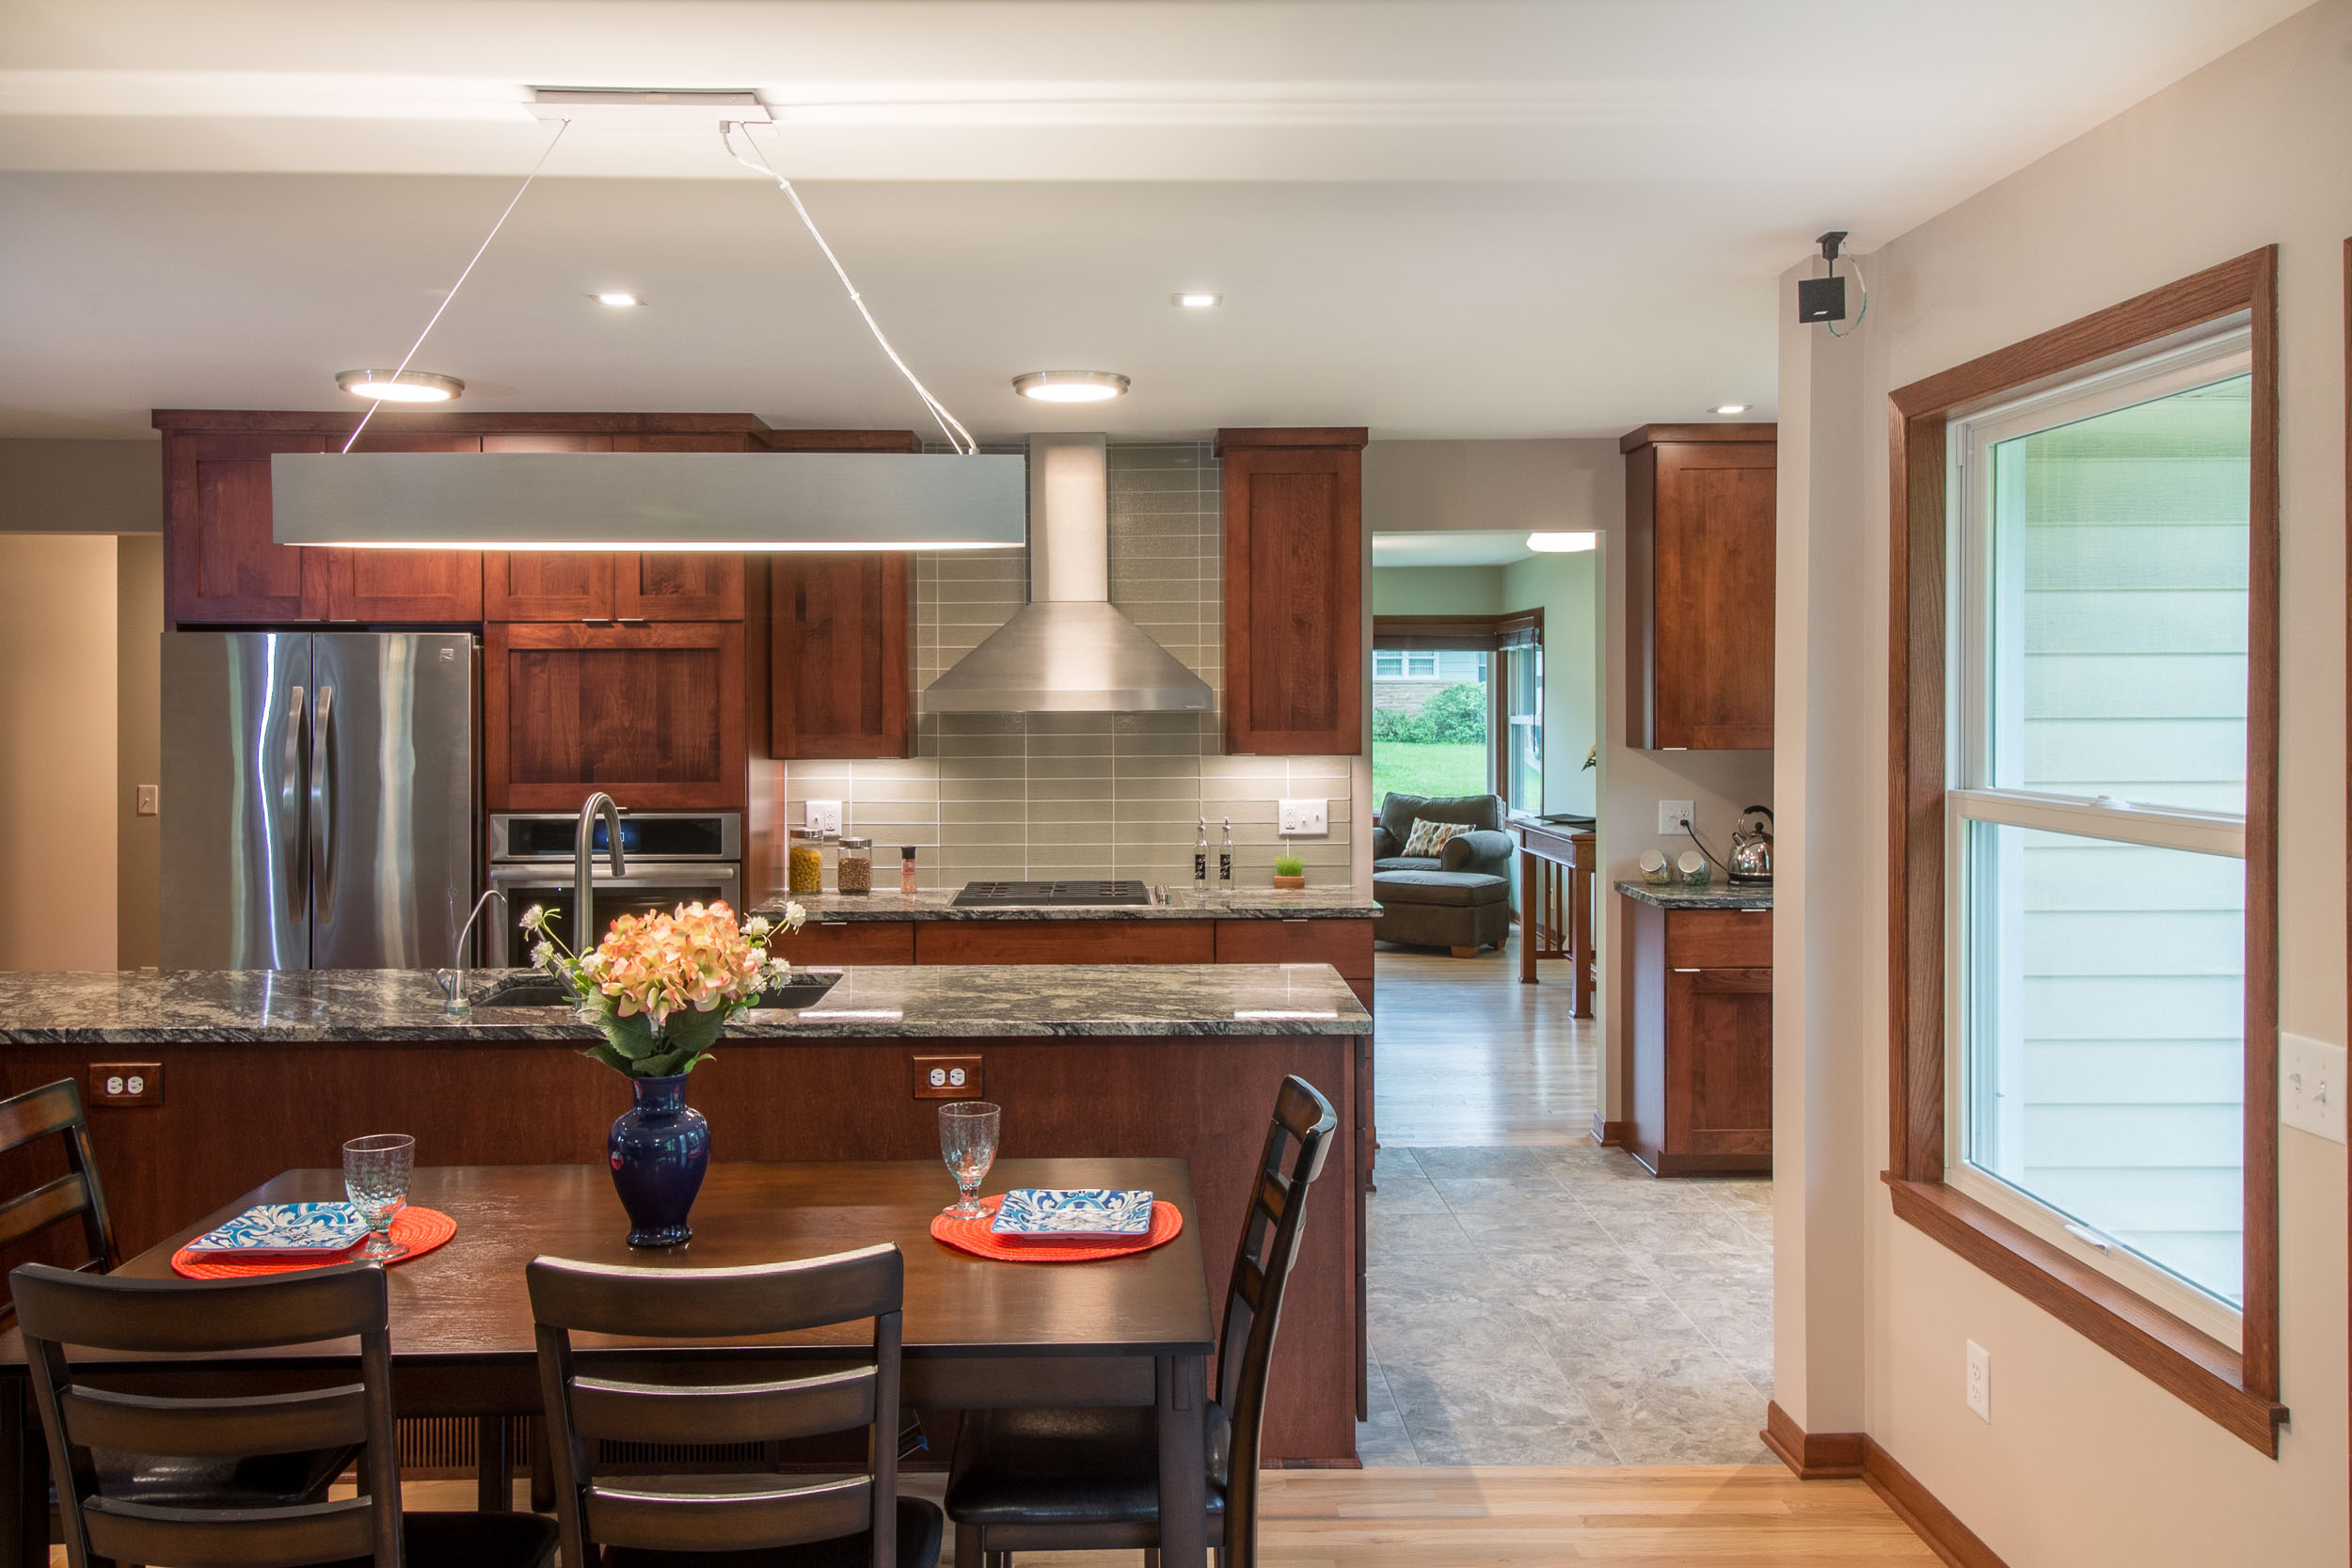 Why You Should Consider Using Recessed Lighting In A Kitchen